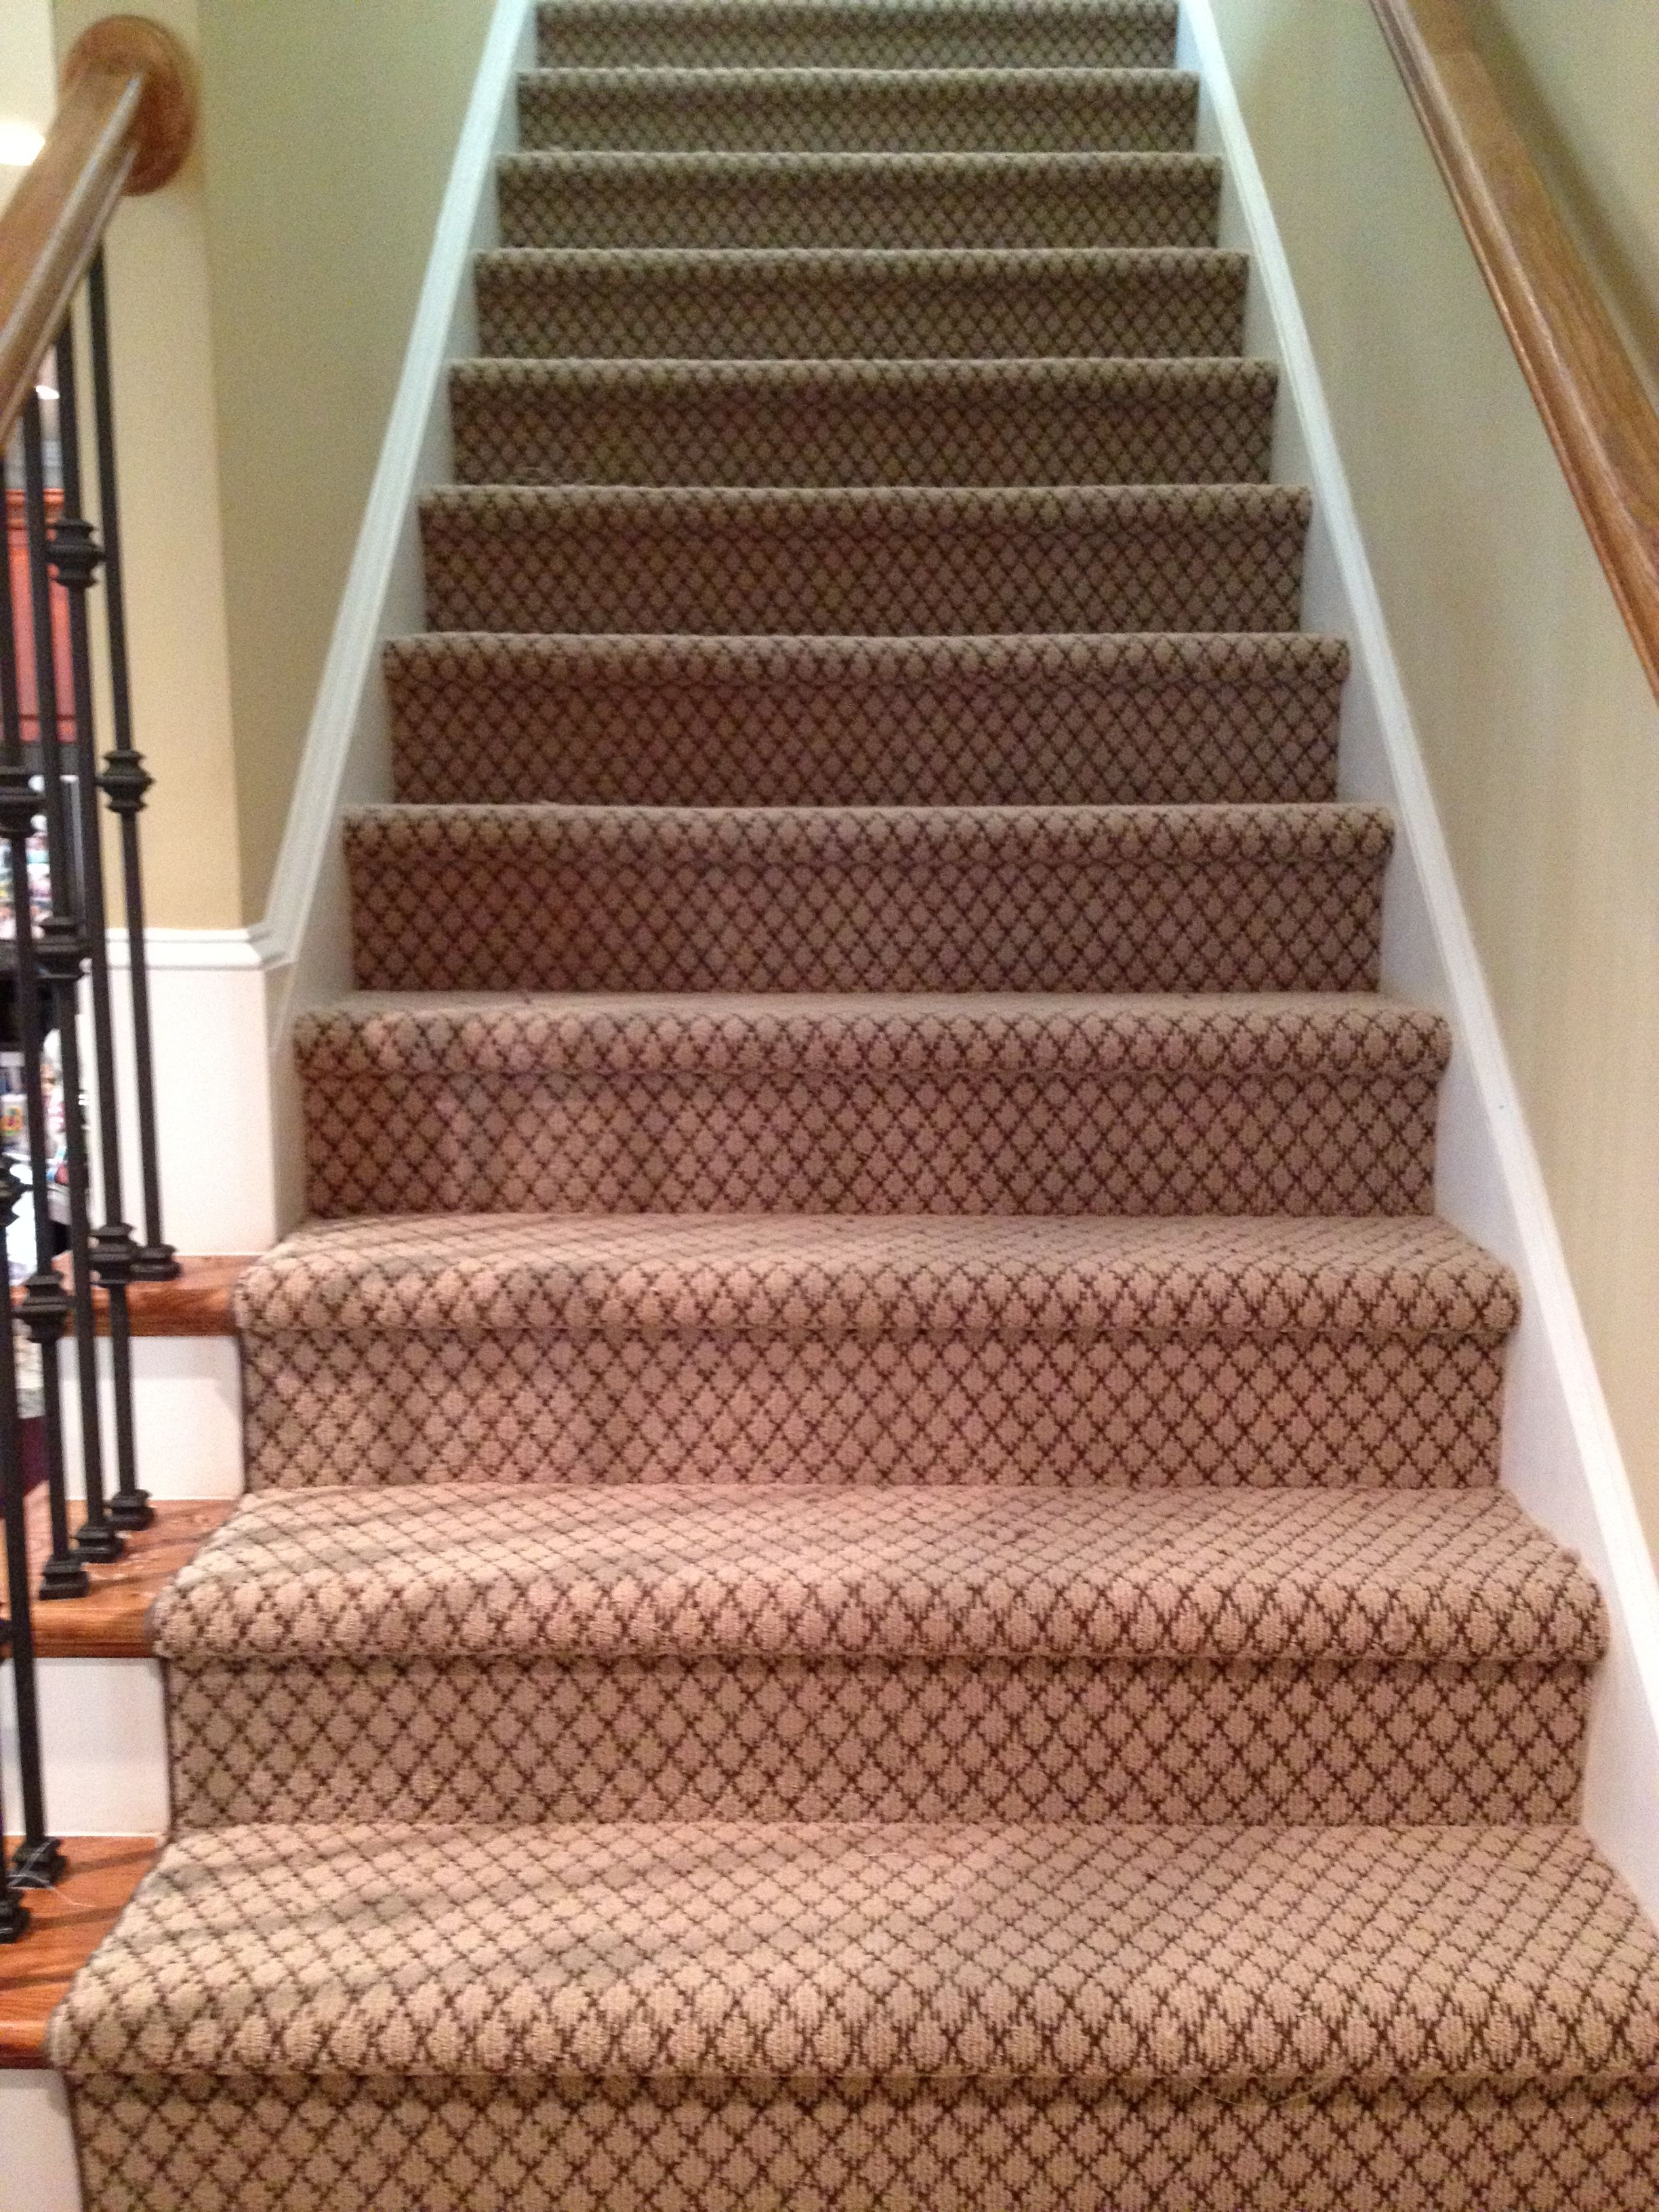 Stair Runner We Installed Yesterday Masland Tristan Color Latte How Did They Do This Patterned Stair Carpet Stair Runner Best Flooring